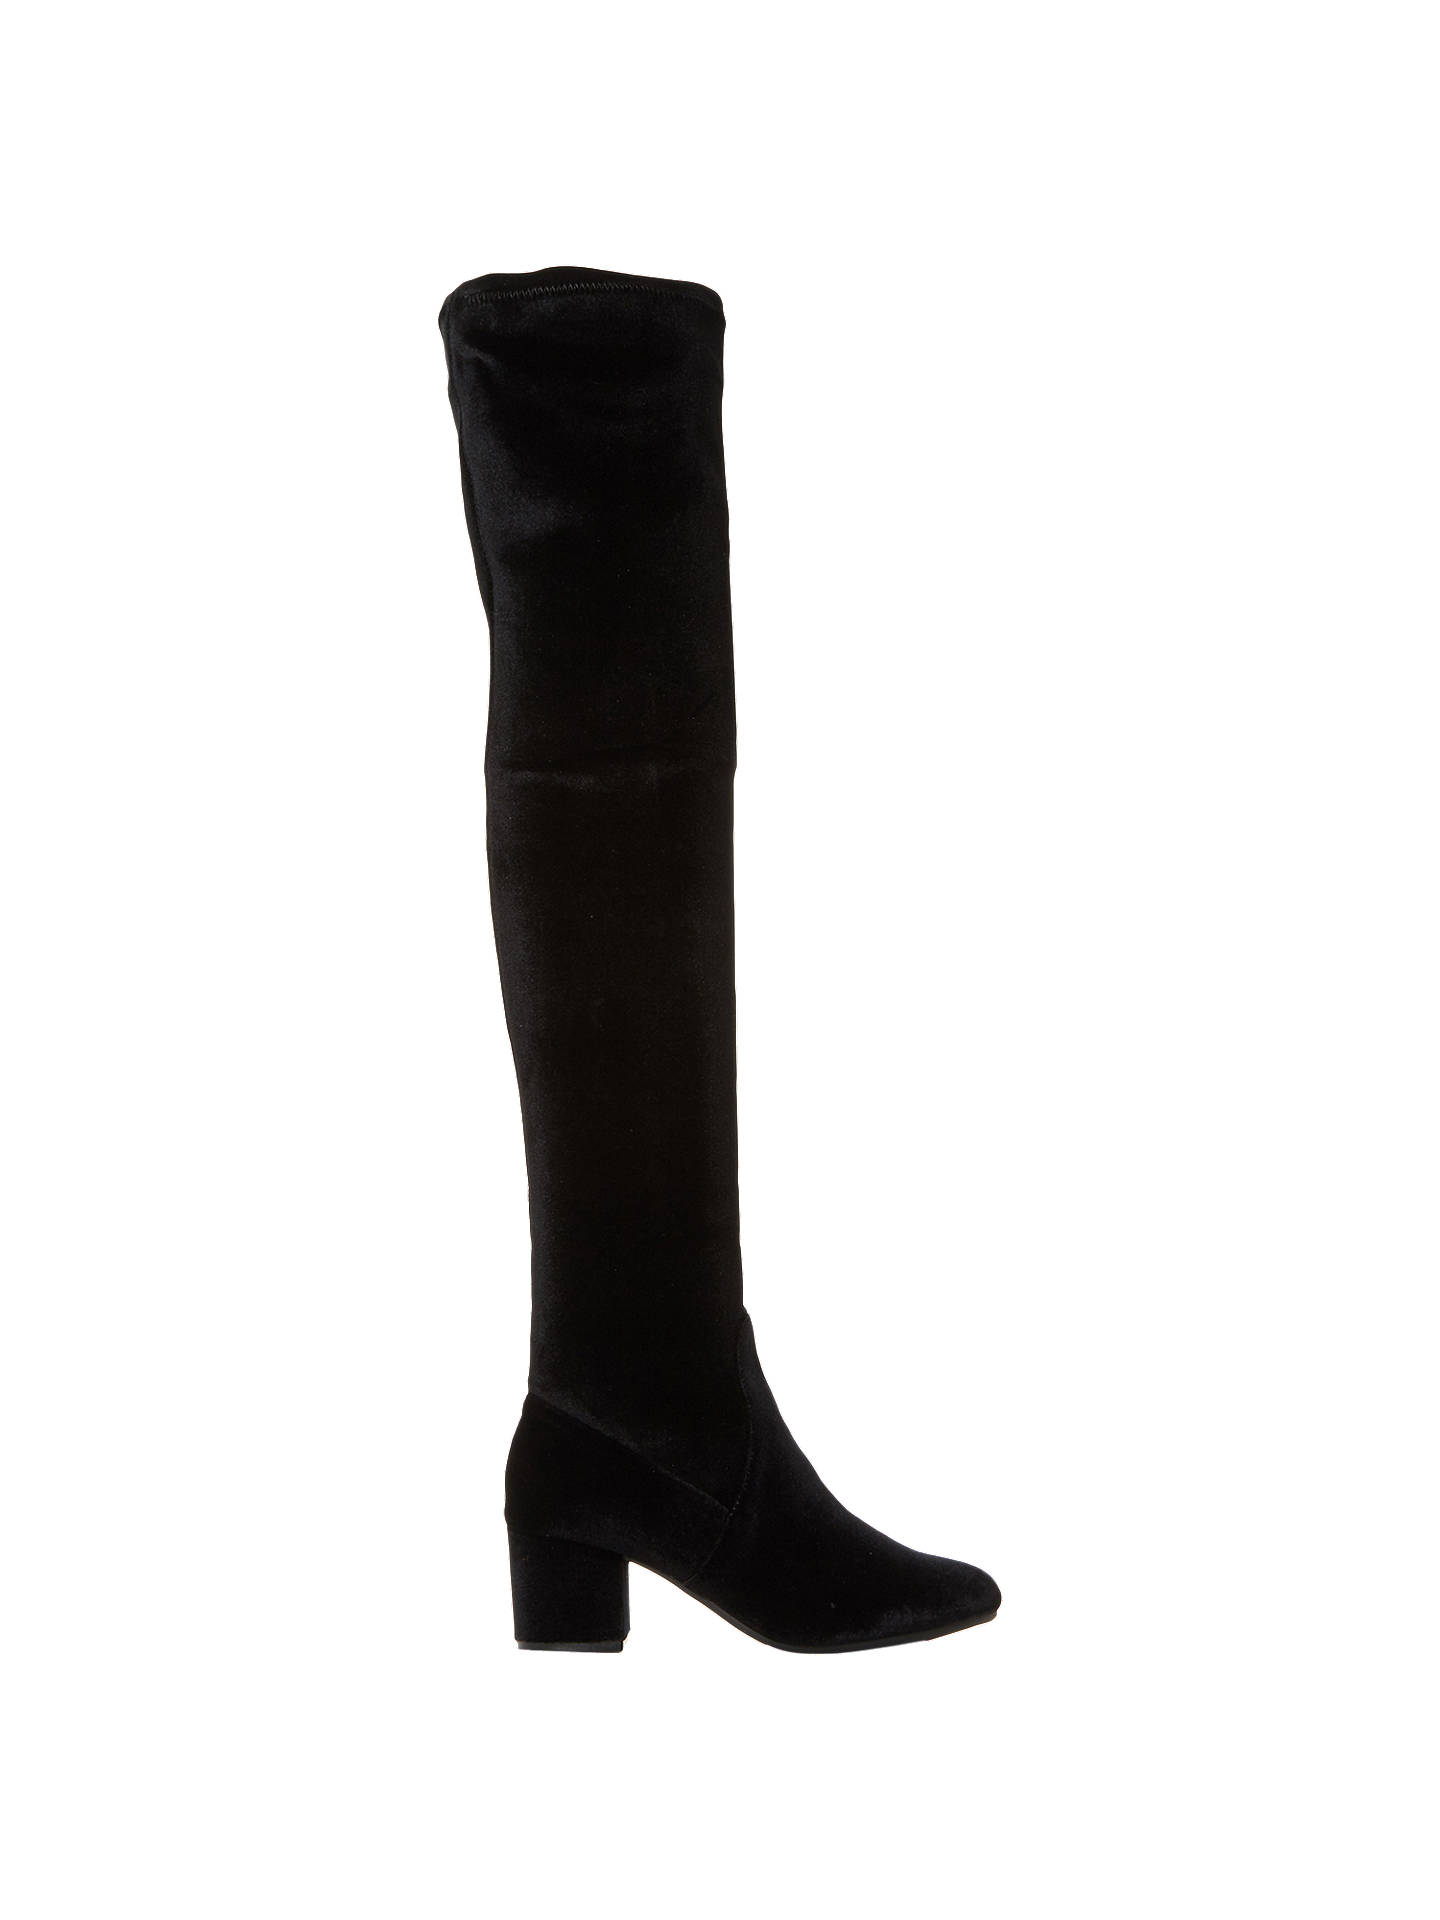 20d54258813 Buy Steve Madden Isaac Over the Knee Boots